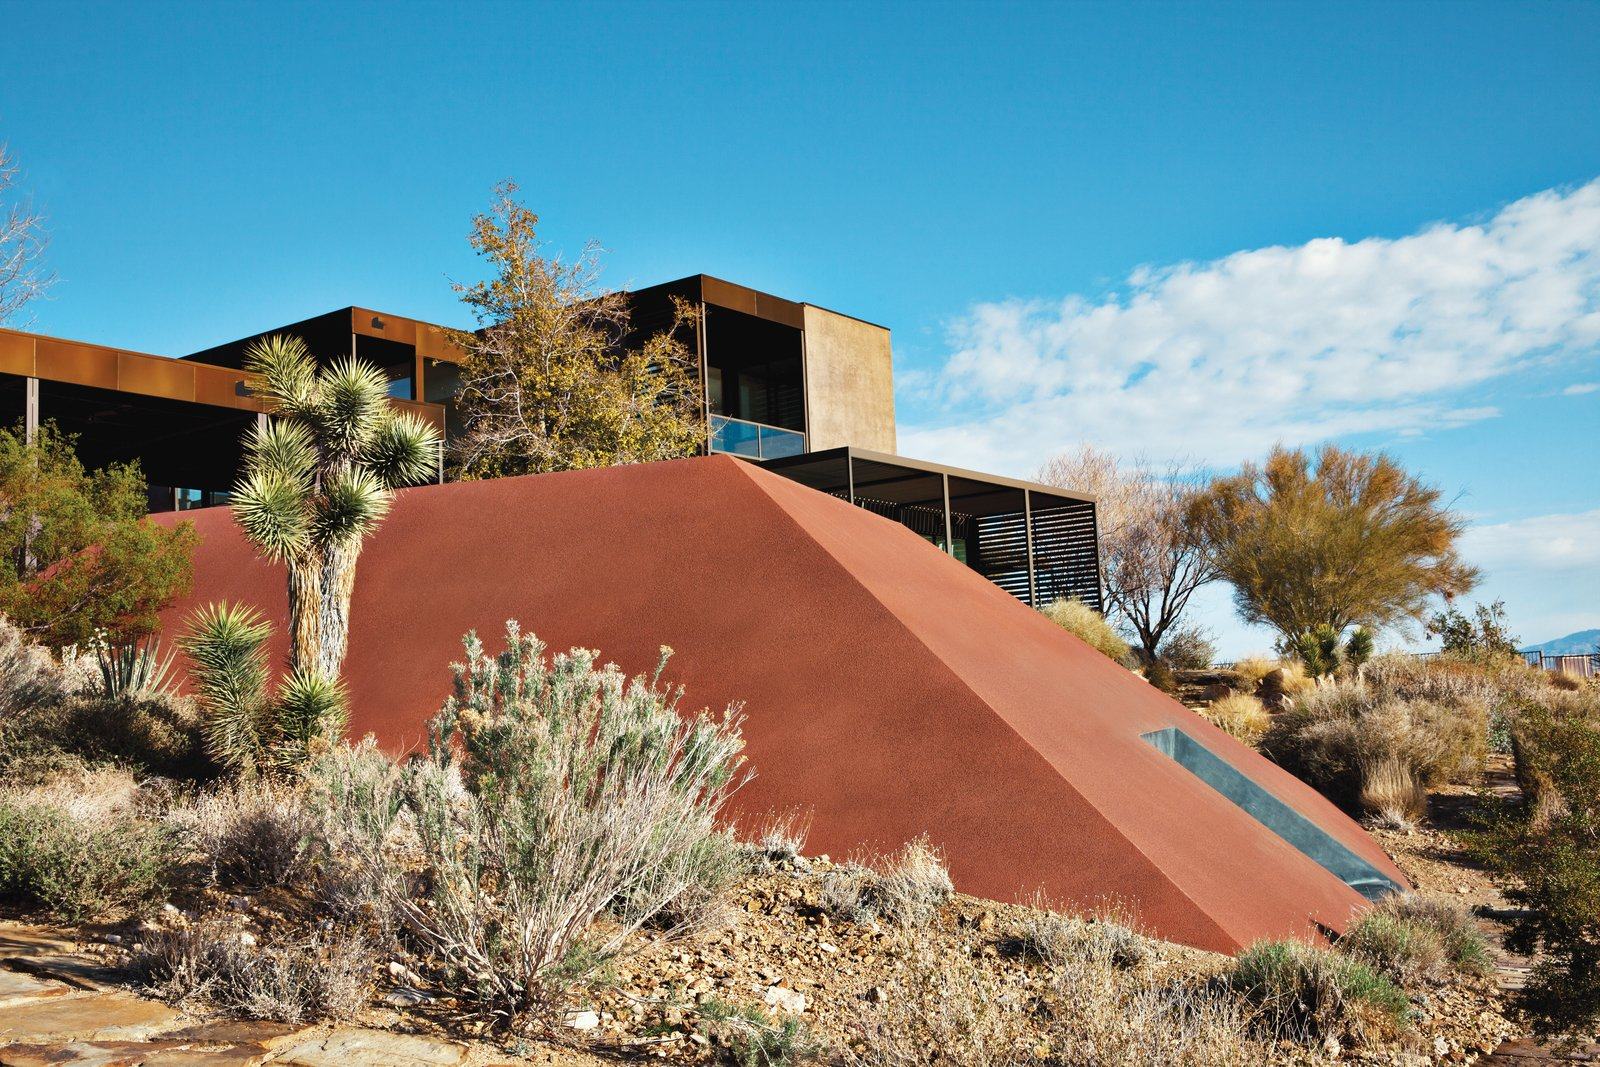 Photo 1 of 3 in House of the Week: This Prefab Hits the Jackpot in Las Vegas